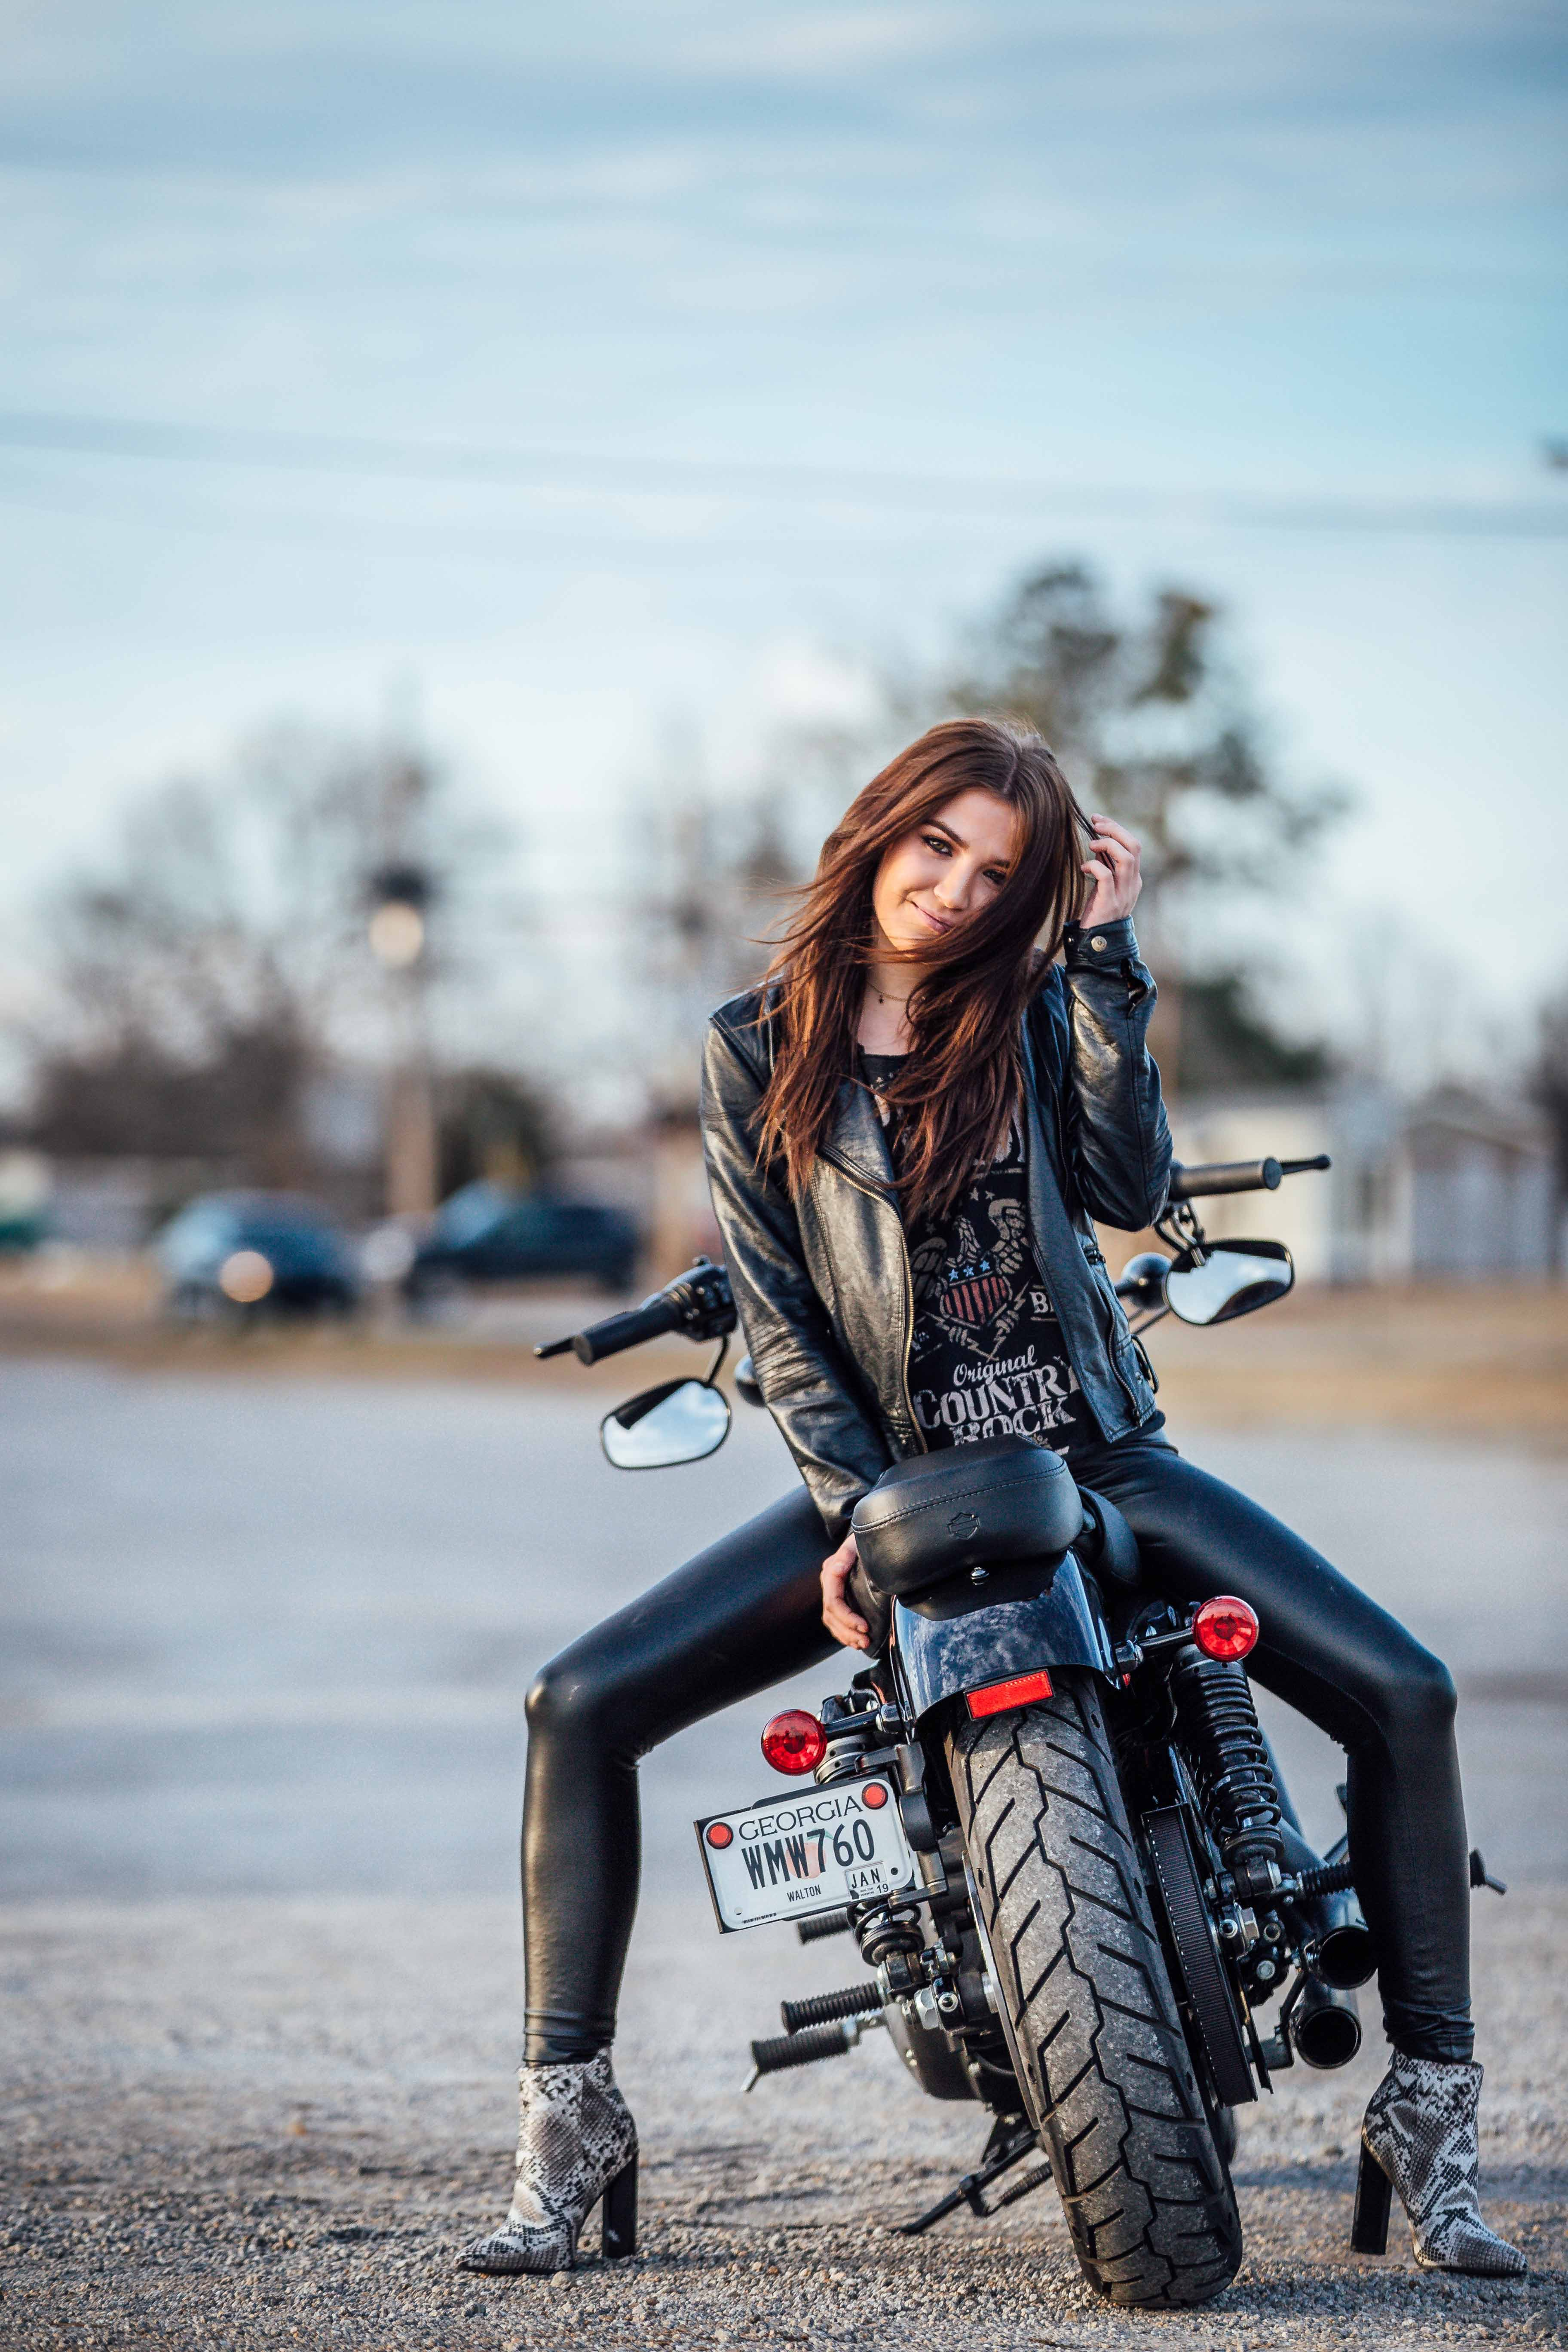 woman in gray jacket sitting on motorcycle